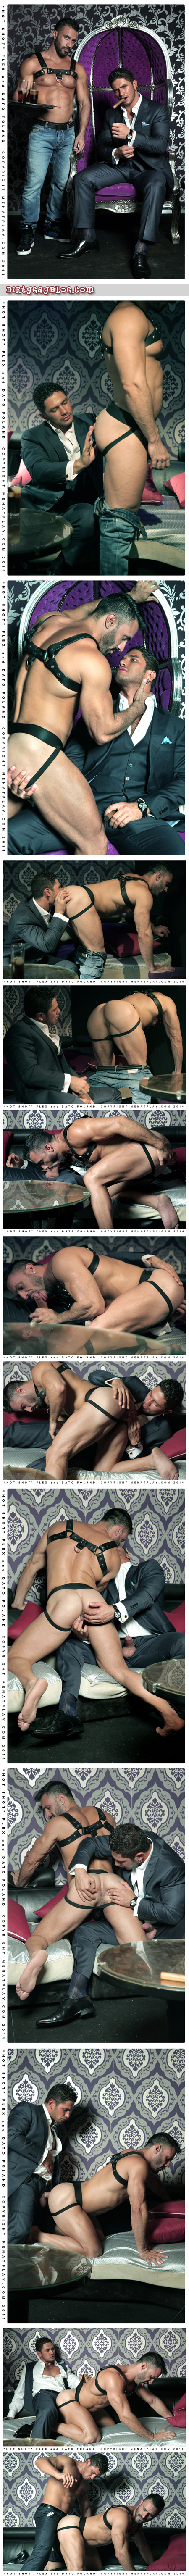 Muscle servant in leather bottoms for his businessman Master.